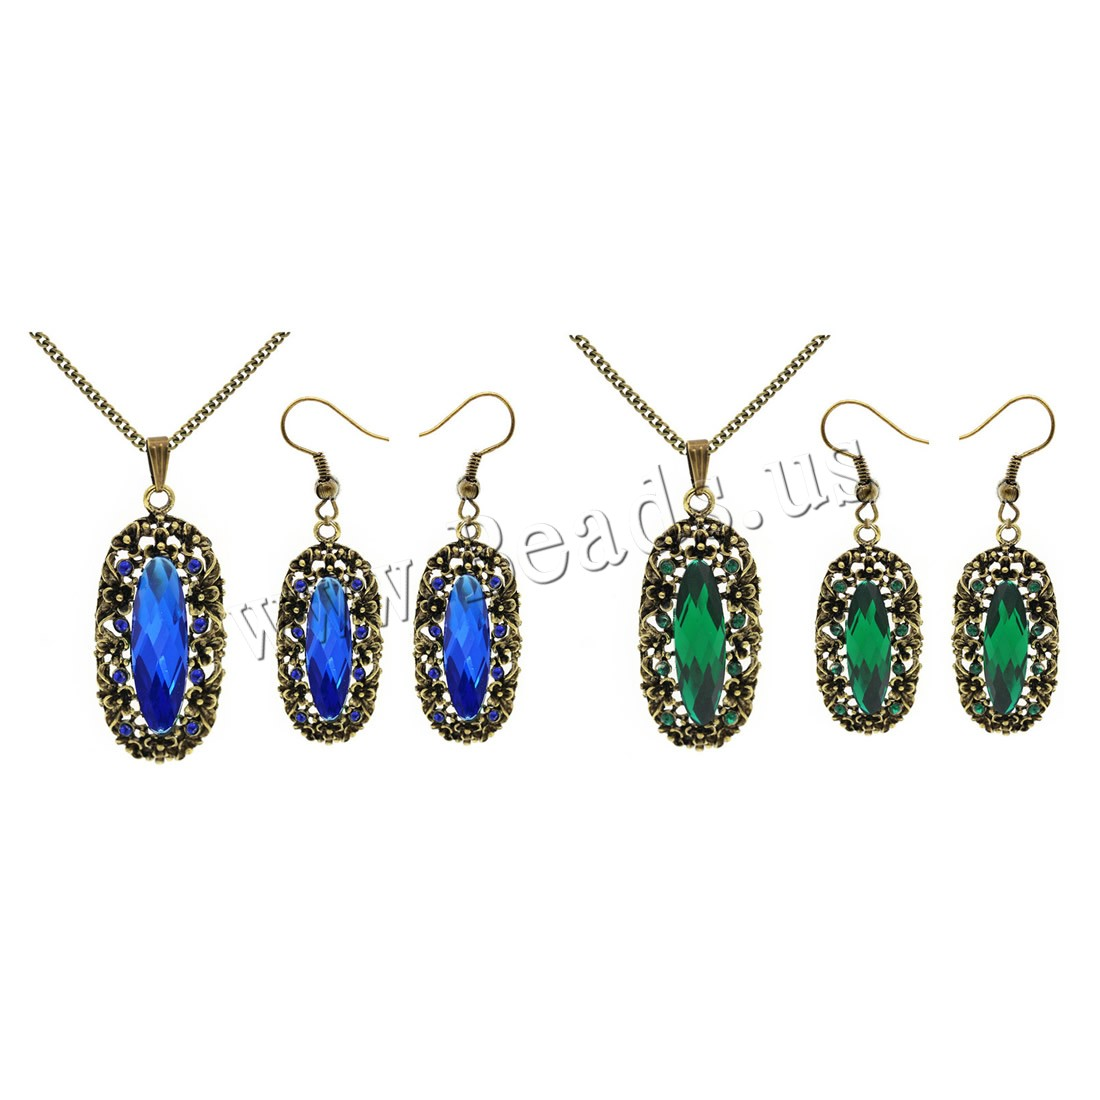 Buy Crystal Jewelry Sets earring & necklace Zinc Alloy iron chain & Crystal iron earring hook 5cm extender chain Flower antique bronze color plated twist oval chain & woman & faceted & rhinestone colors choice lead & cadmium free 20x46mm 18x60mm Length:Approx 15.5 Inch Sold Set